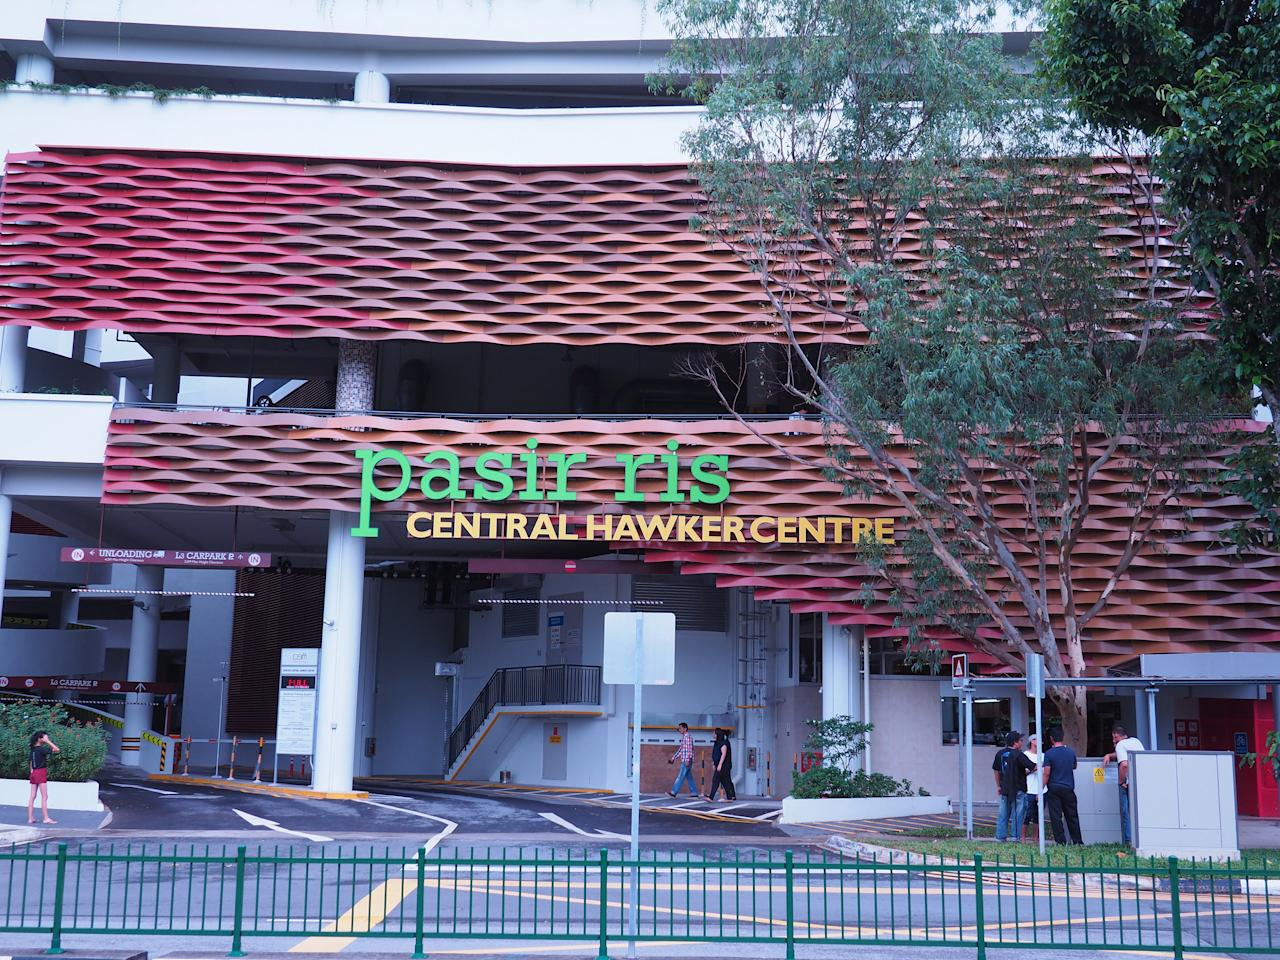 <p>The facade of the Pasir Ris Central Hawker Centre. (Photo: Nurul Azliah/Yahoo Lifestyle Singapore) </p>